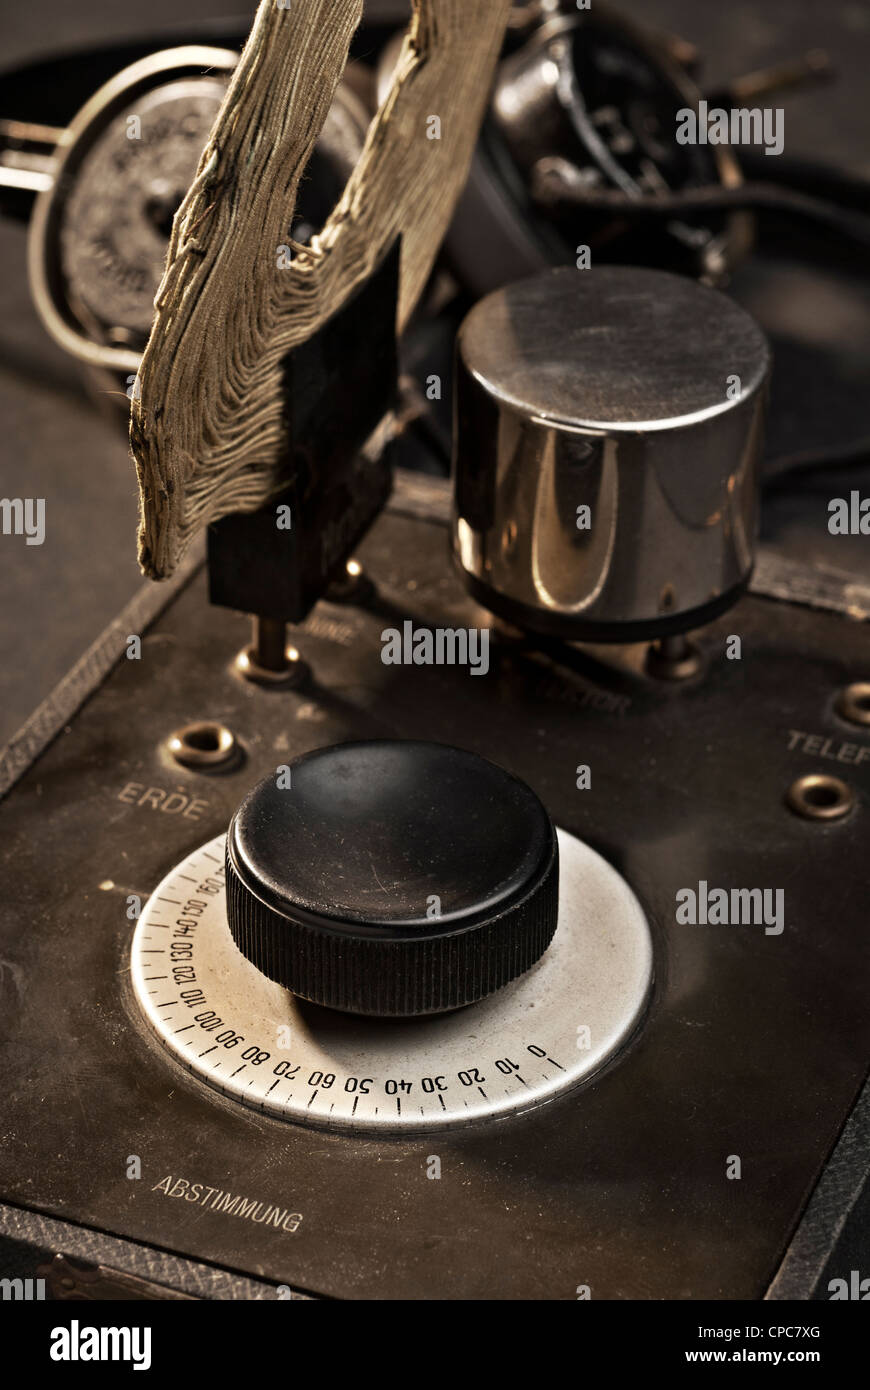 Old detector receiver. - Stock Image